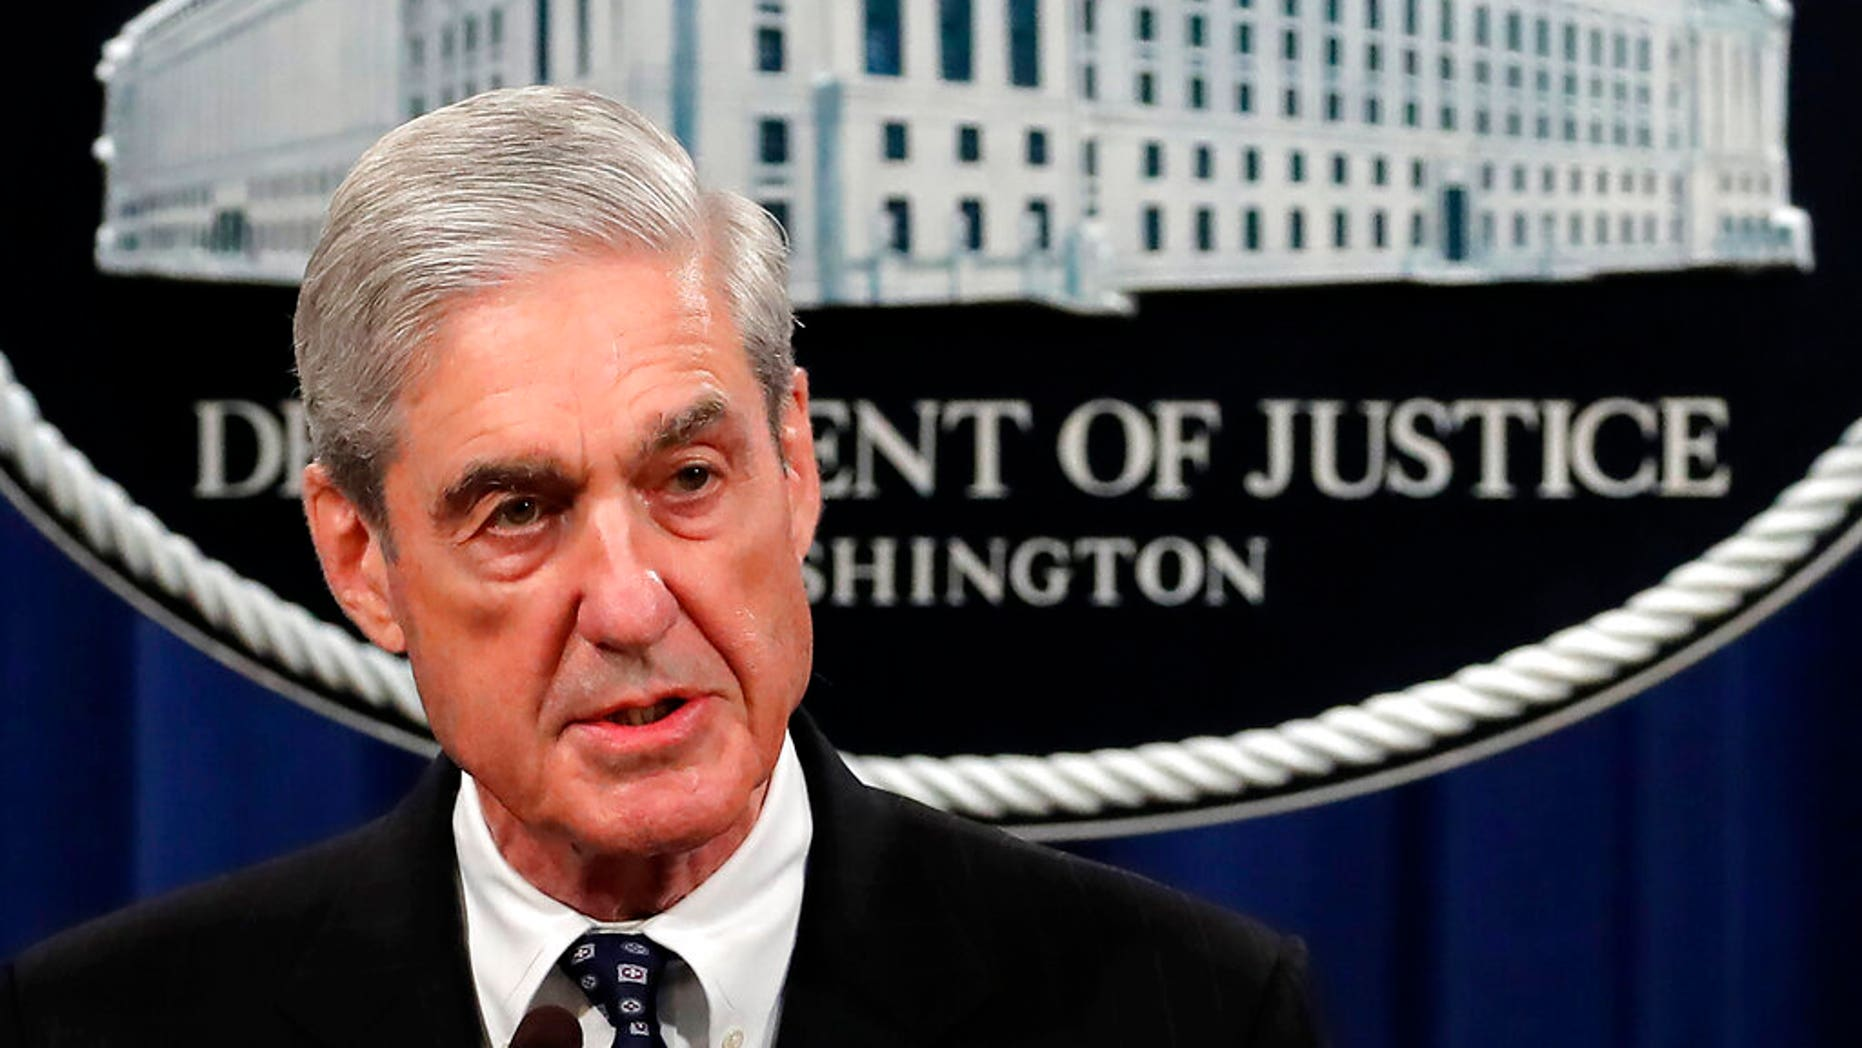 FILE - In this May 29, 2019, file photo, special counsel Robert Mueller speaks at the Department of Justice Wednesday, in Washington, about the Russia investigation. (AP Photo/Carolyn Kaster, File)